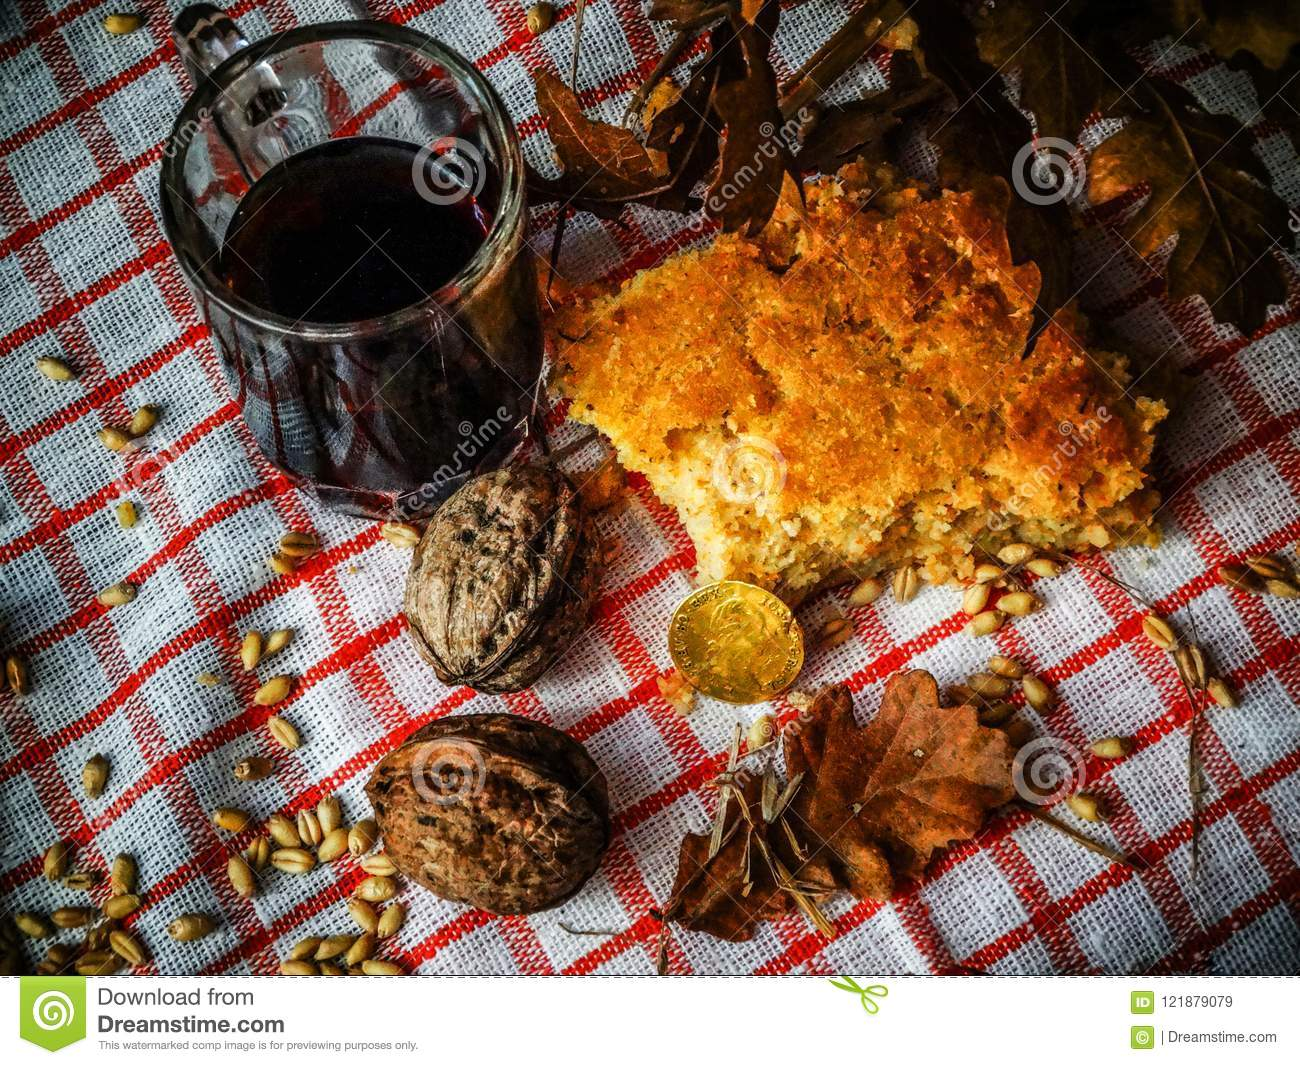 bread wine and nuts on a rustic surface serbian christmas costume serbian christmas - When Is Serbian Christmas